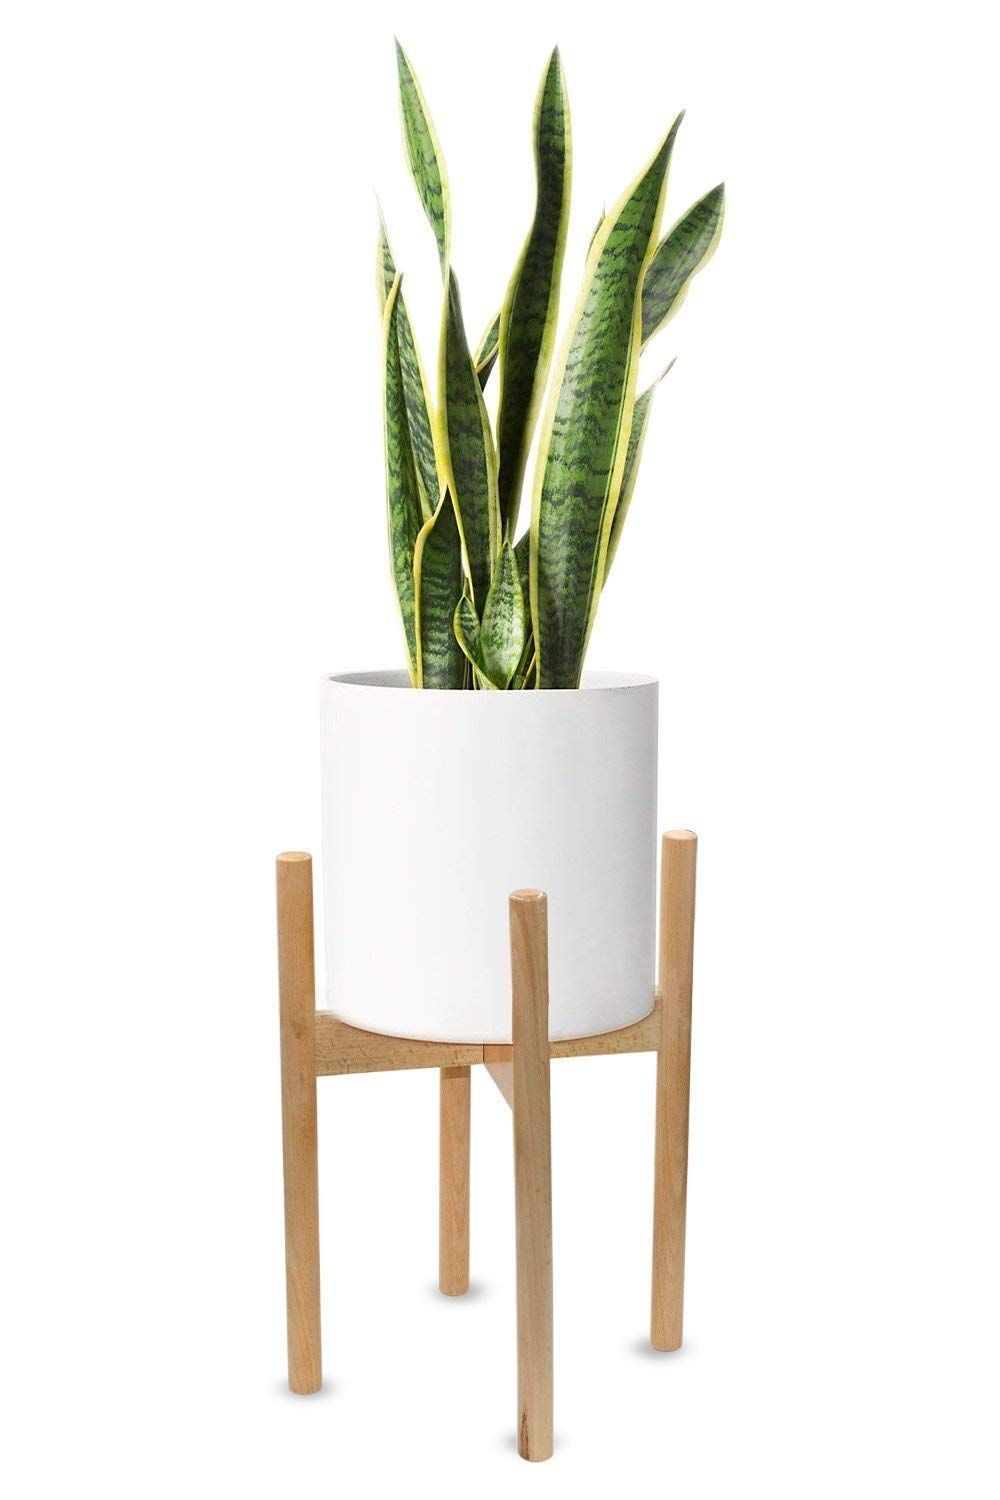 Amazon Com M Aimee Plant Stand Mid Century Wood Flower Pot Holder Display Potted Rack Rustic Up To 10 Inch Flower Pot Holder Plant Stand Modern Plant Stand